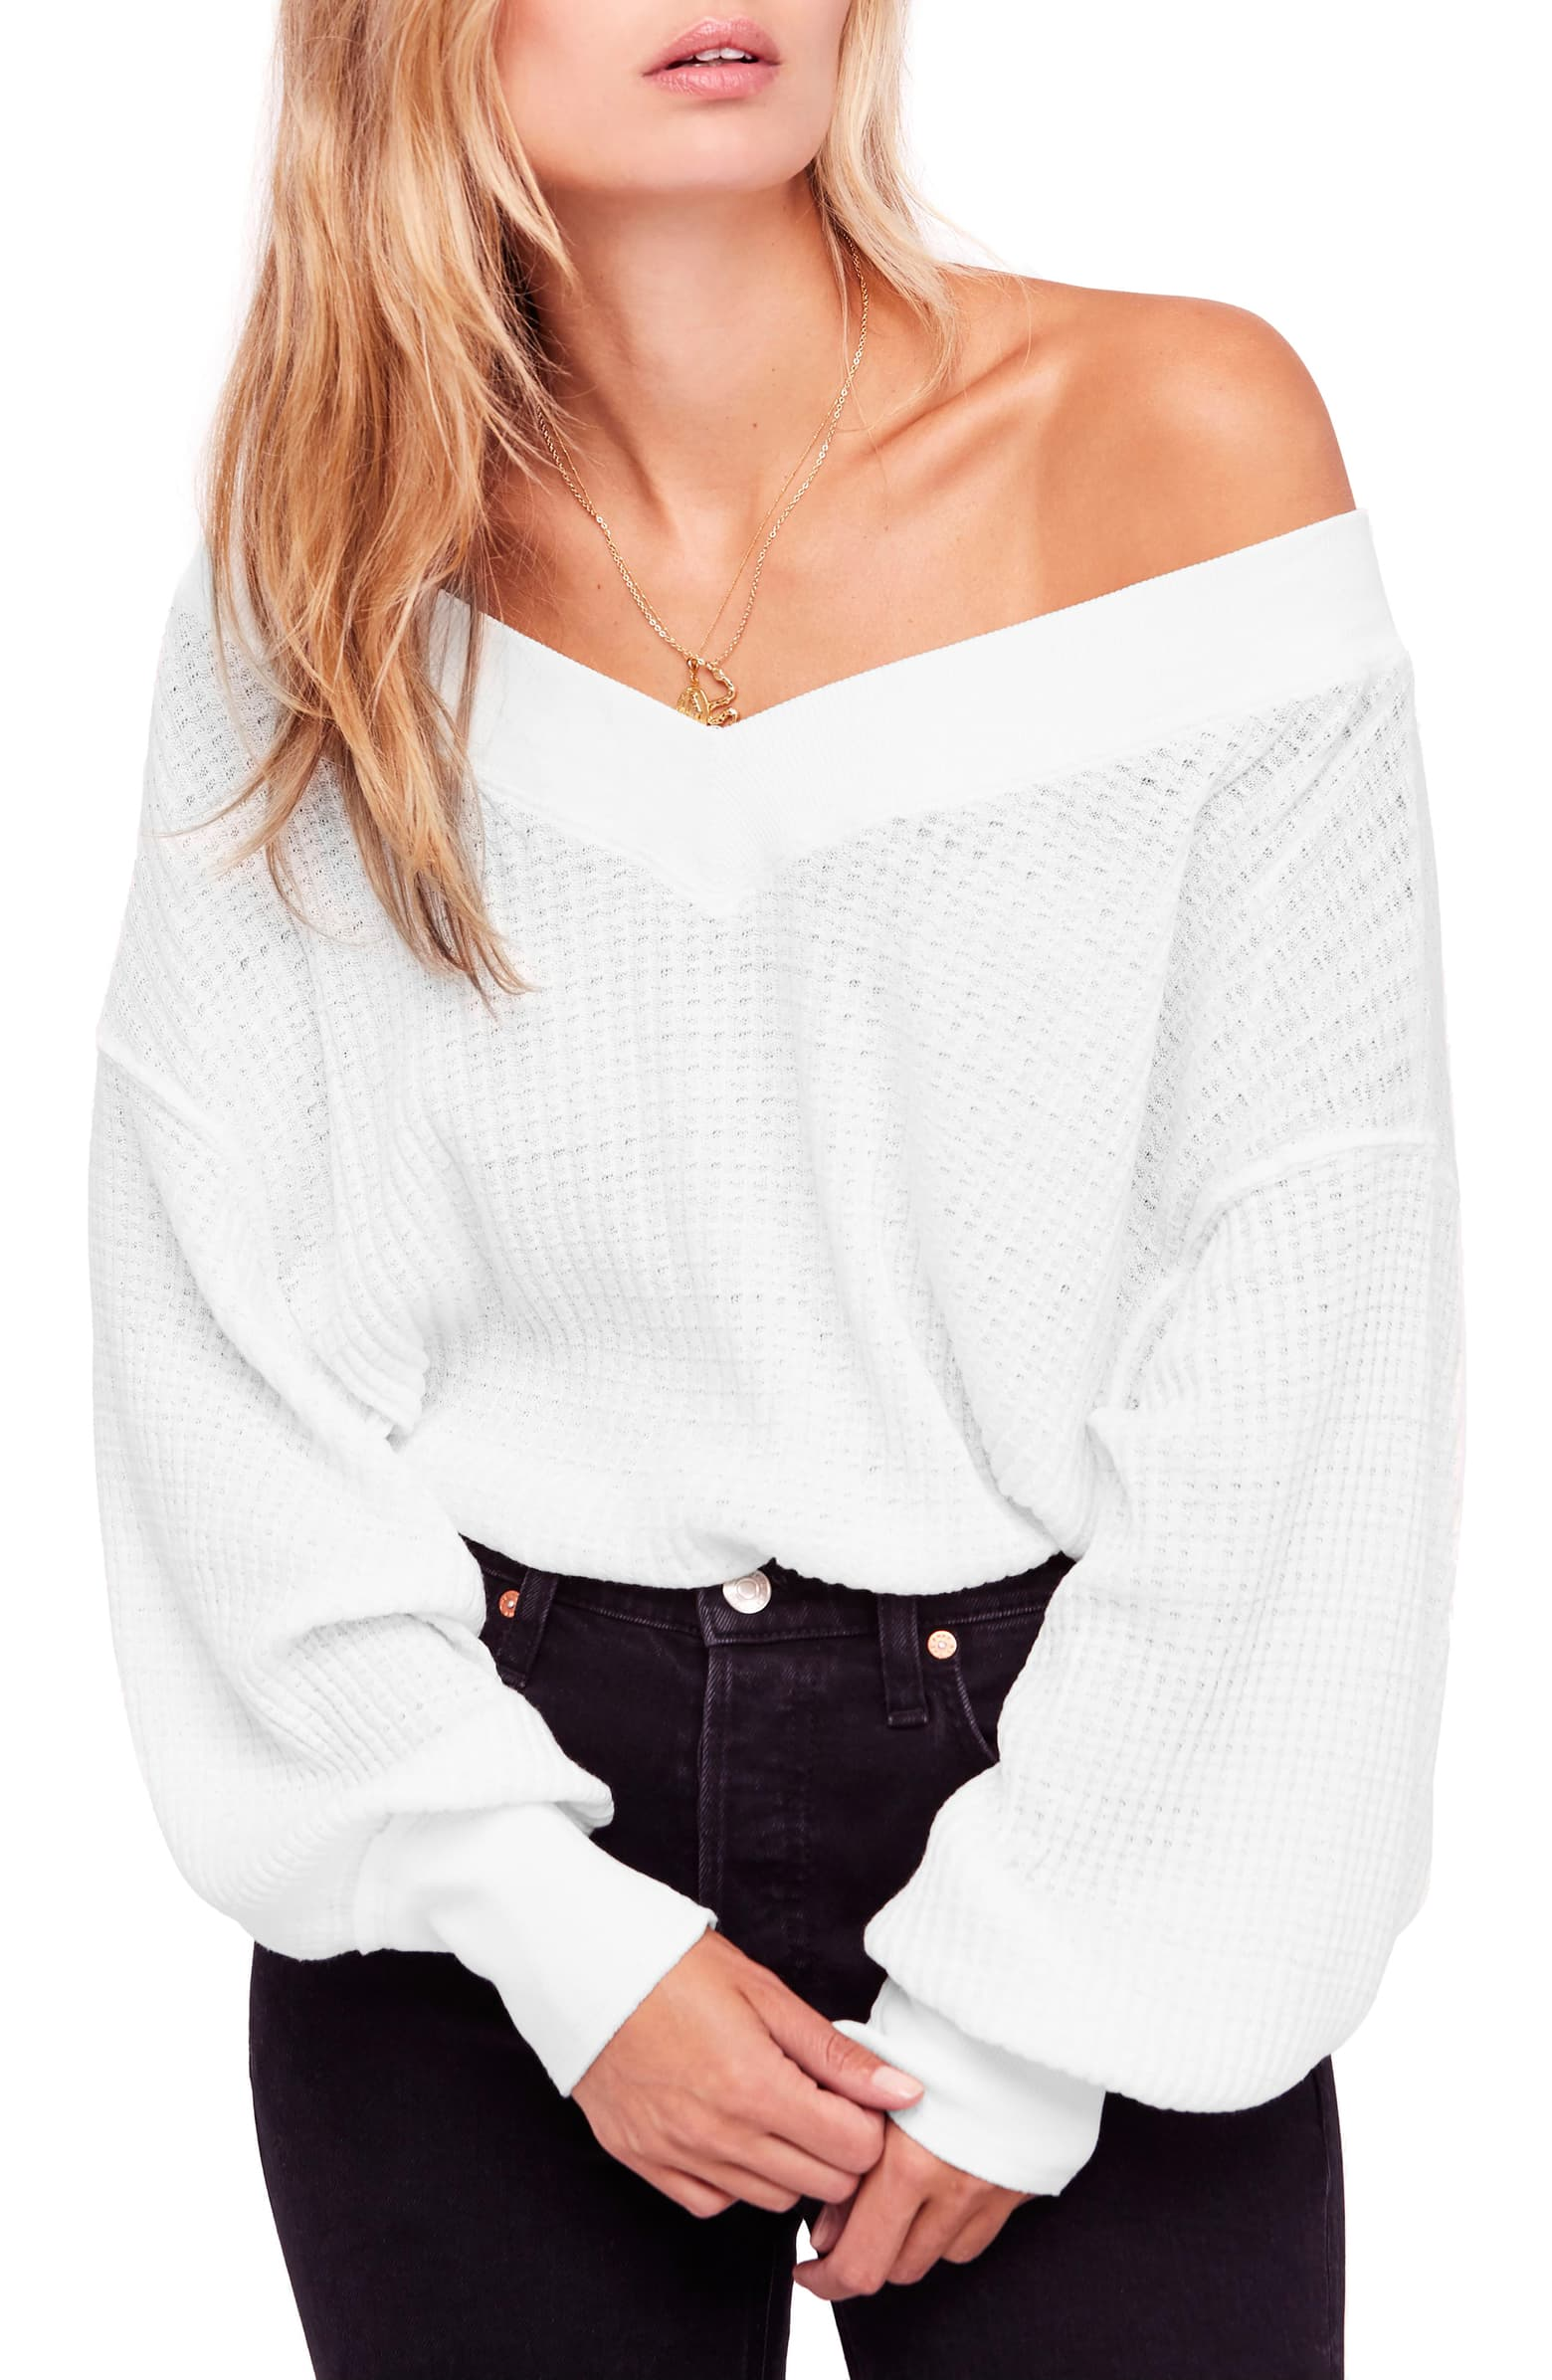 Nordstrom Anniversary Sale - #NSALE - Nordstrom Sale - Fall Fashion - Women's Fashion - Sabby Style-20